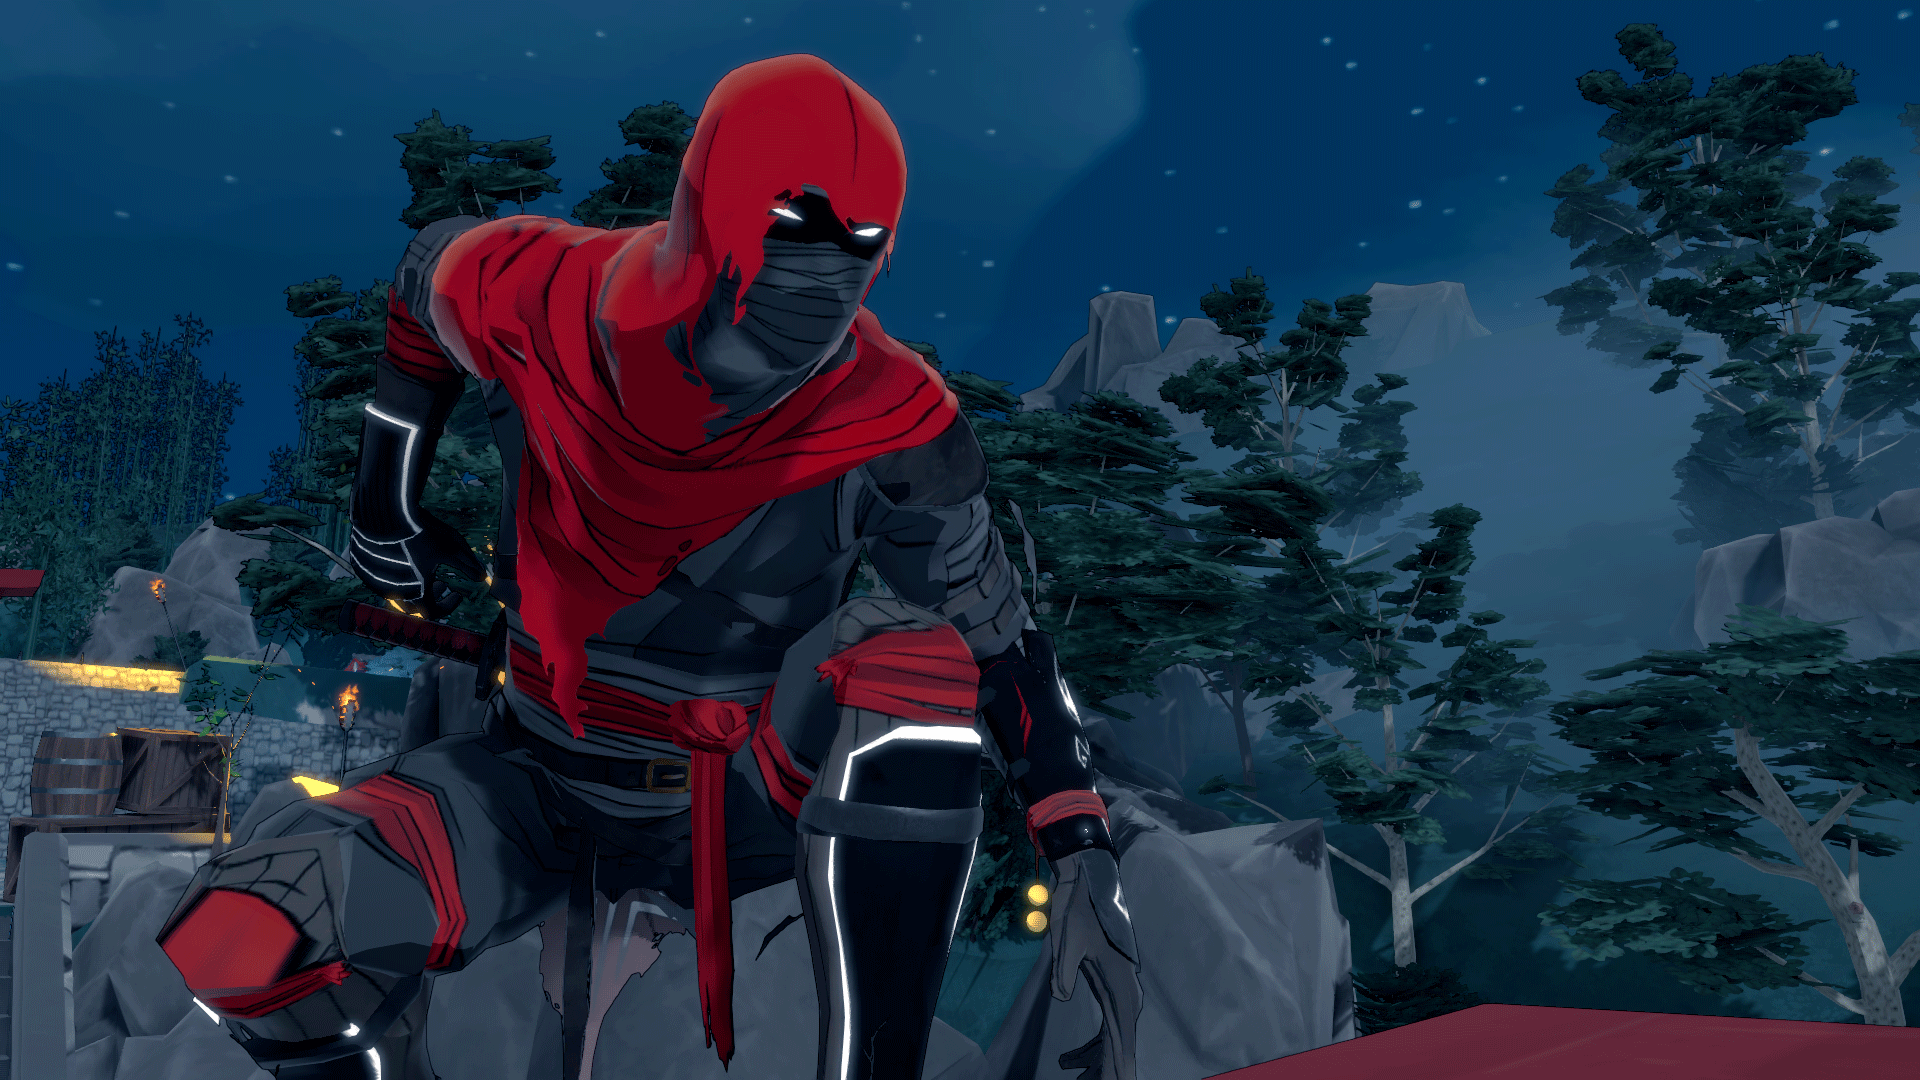 boom games reviews - Aragami